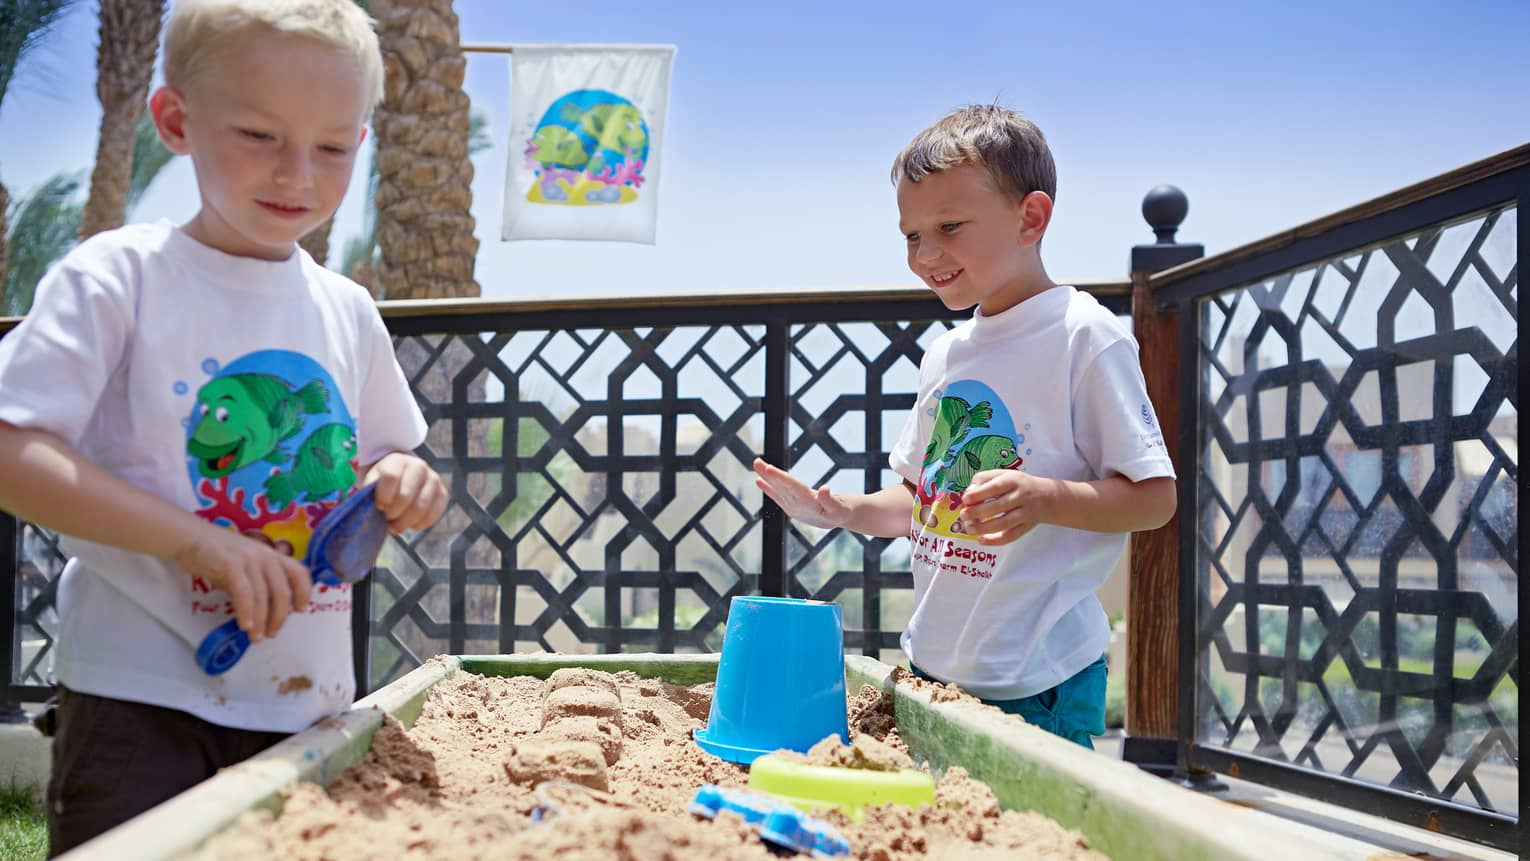 Two young boys in white T-shirts play at sand table with plastic buckets, shovels